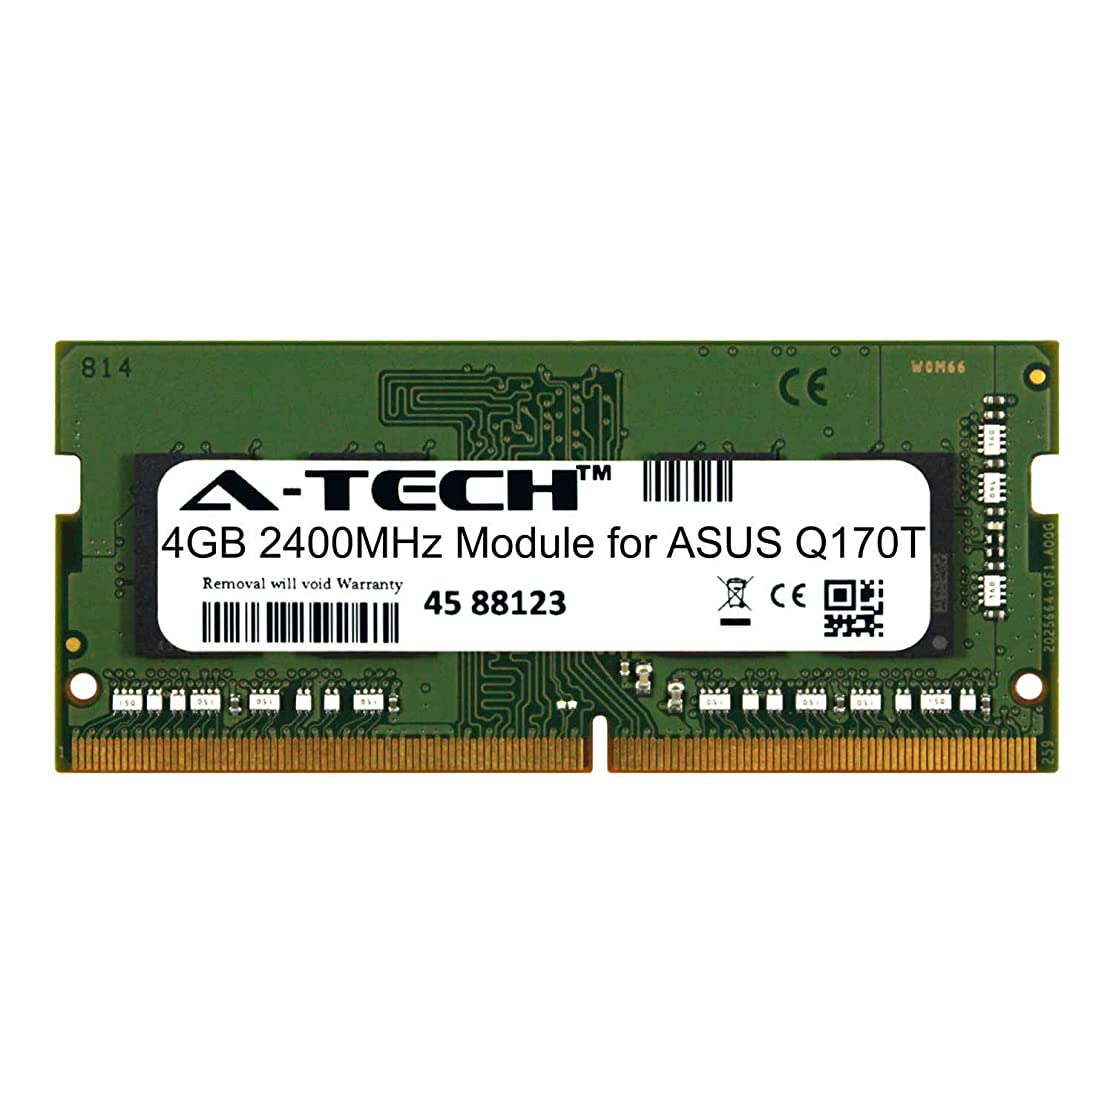 A-Tech 4GB Module for ASUS Q170T Laptop & Notebook Compatible DDR4 2400Mhz Memory Ram (ATMS394430A25824X1)